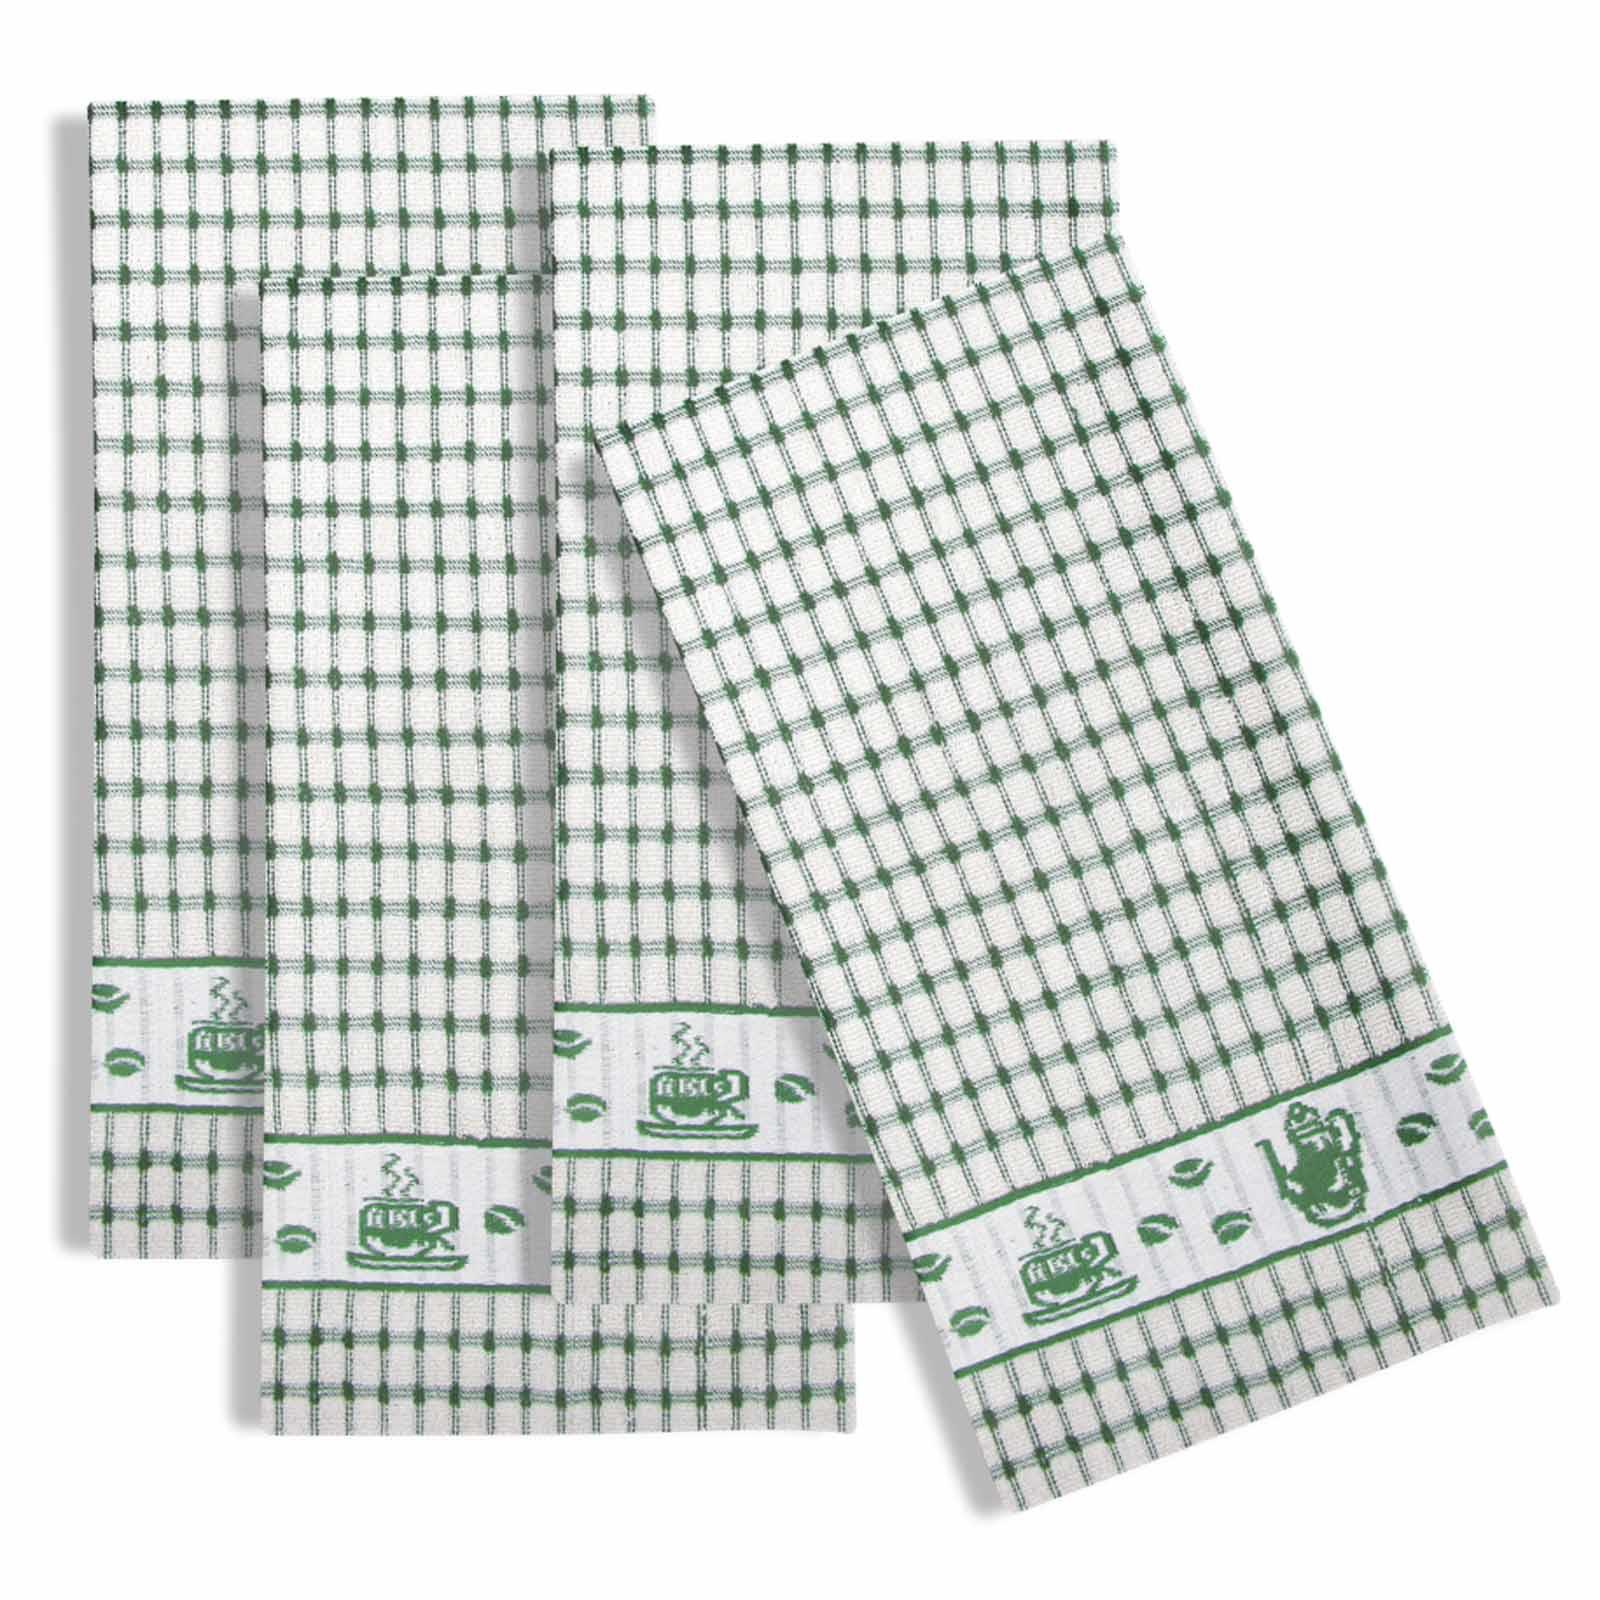 Packs-of-2-4-6-12-Tea-Towels-100-Cotton-Terry-Kitchen-Dish-Drying-Towel-Sets thumbnail 60